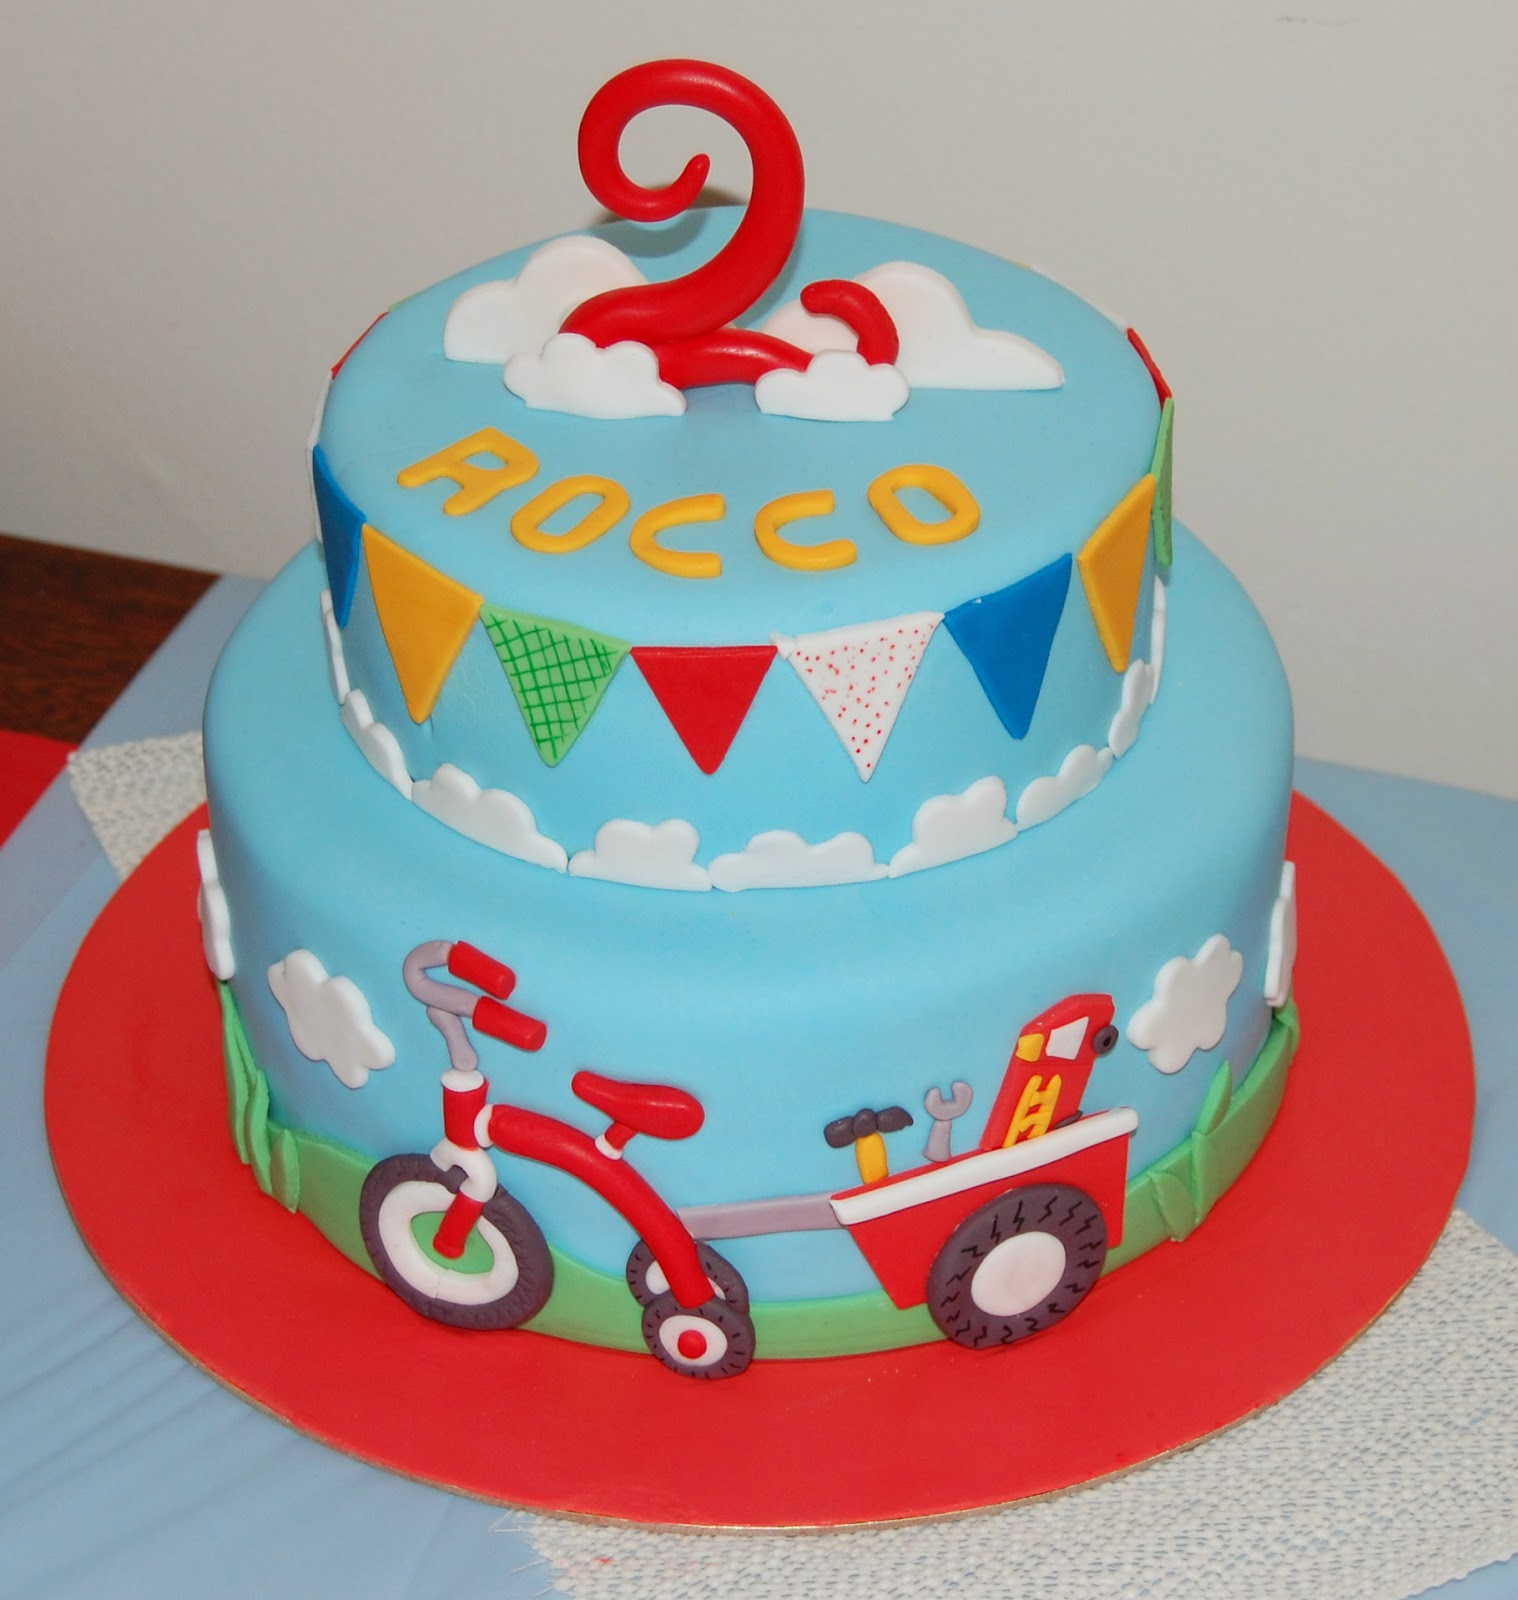 Butter hearts sugar tricycle birthday cake Gateau anniversaire garcon